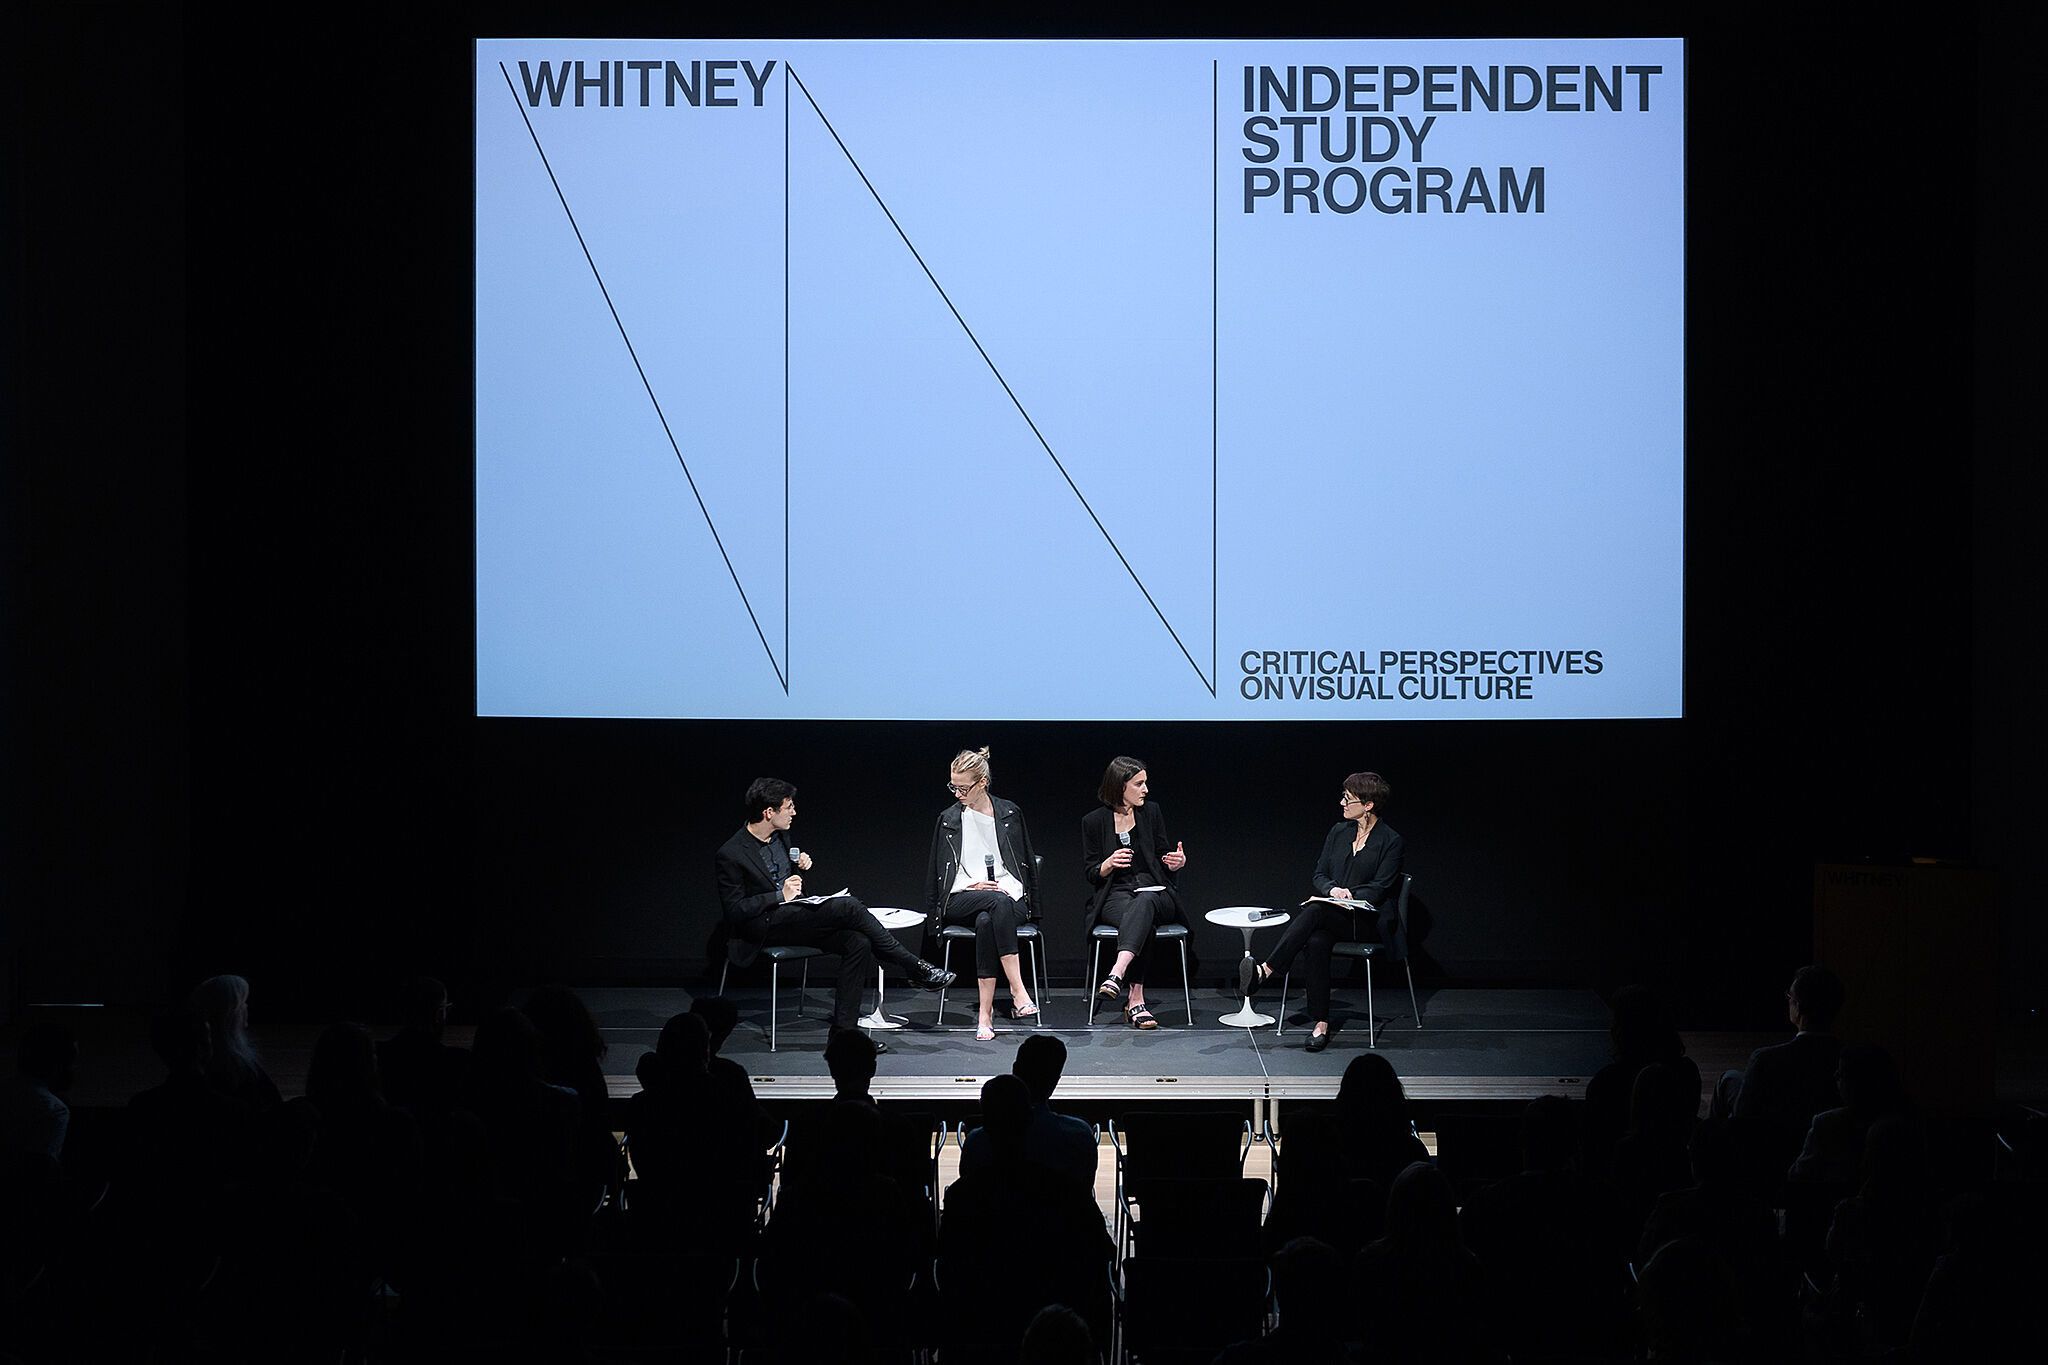 Four people sit on a stage, with a screen lit up behind them with the Whitney Museum logo